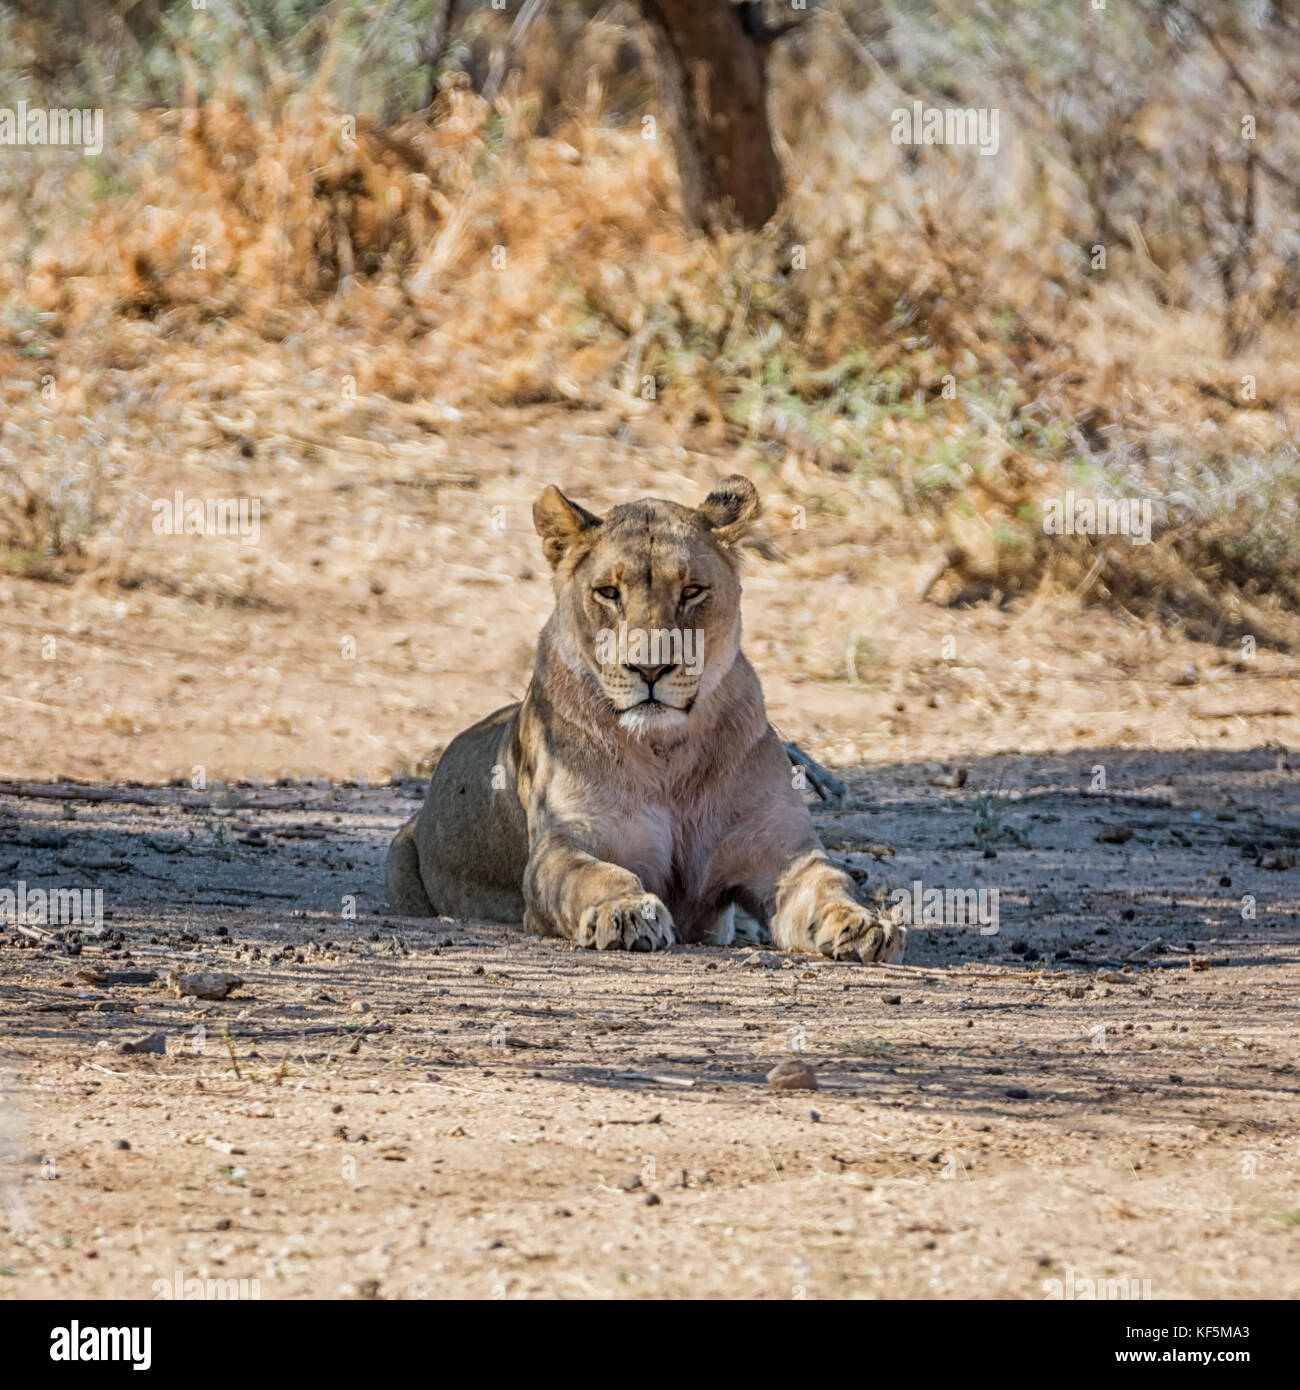 A Lioness resting in the shade of a tree in the Namibian savanna - Stock Image